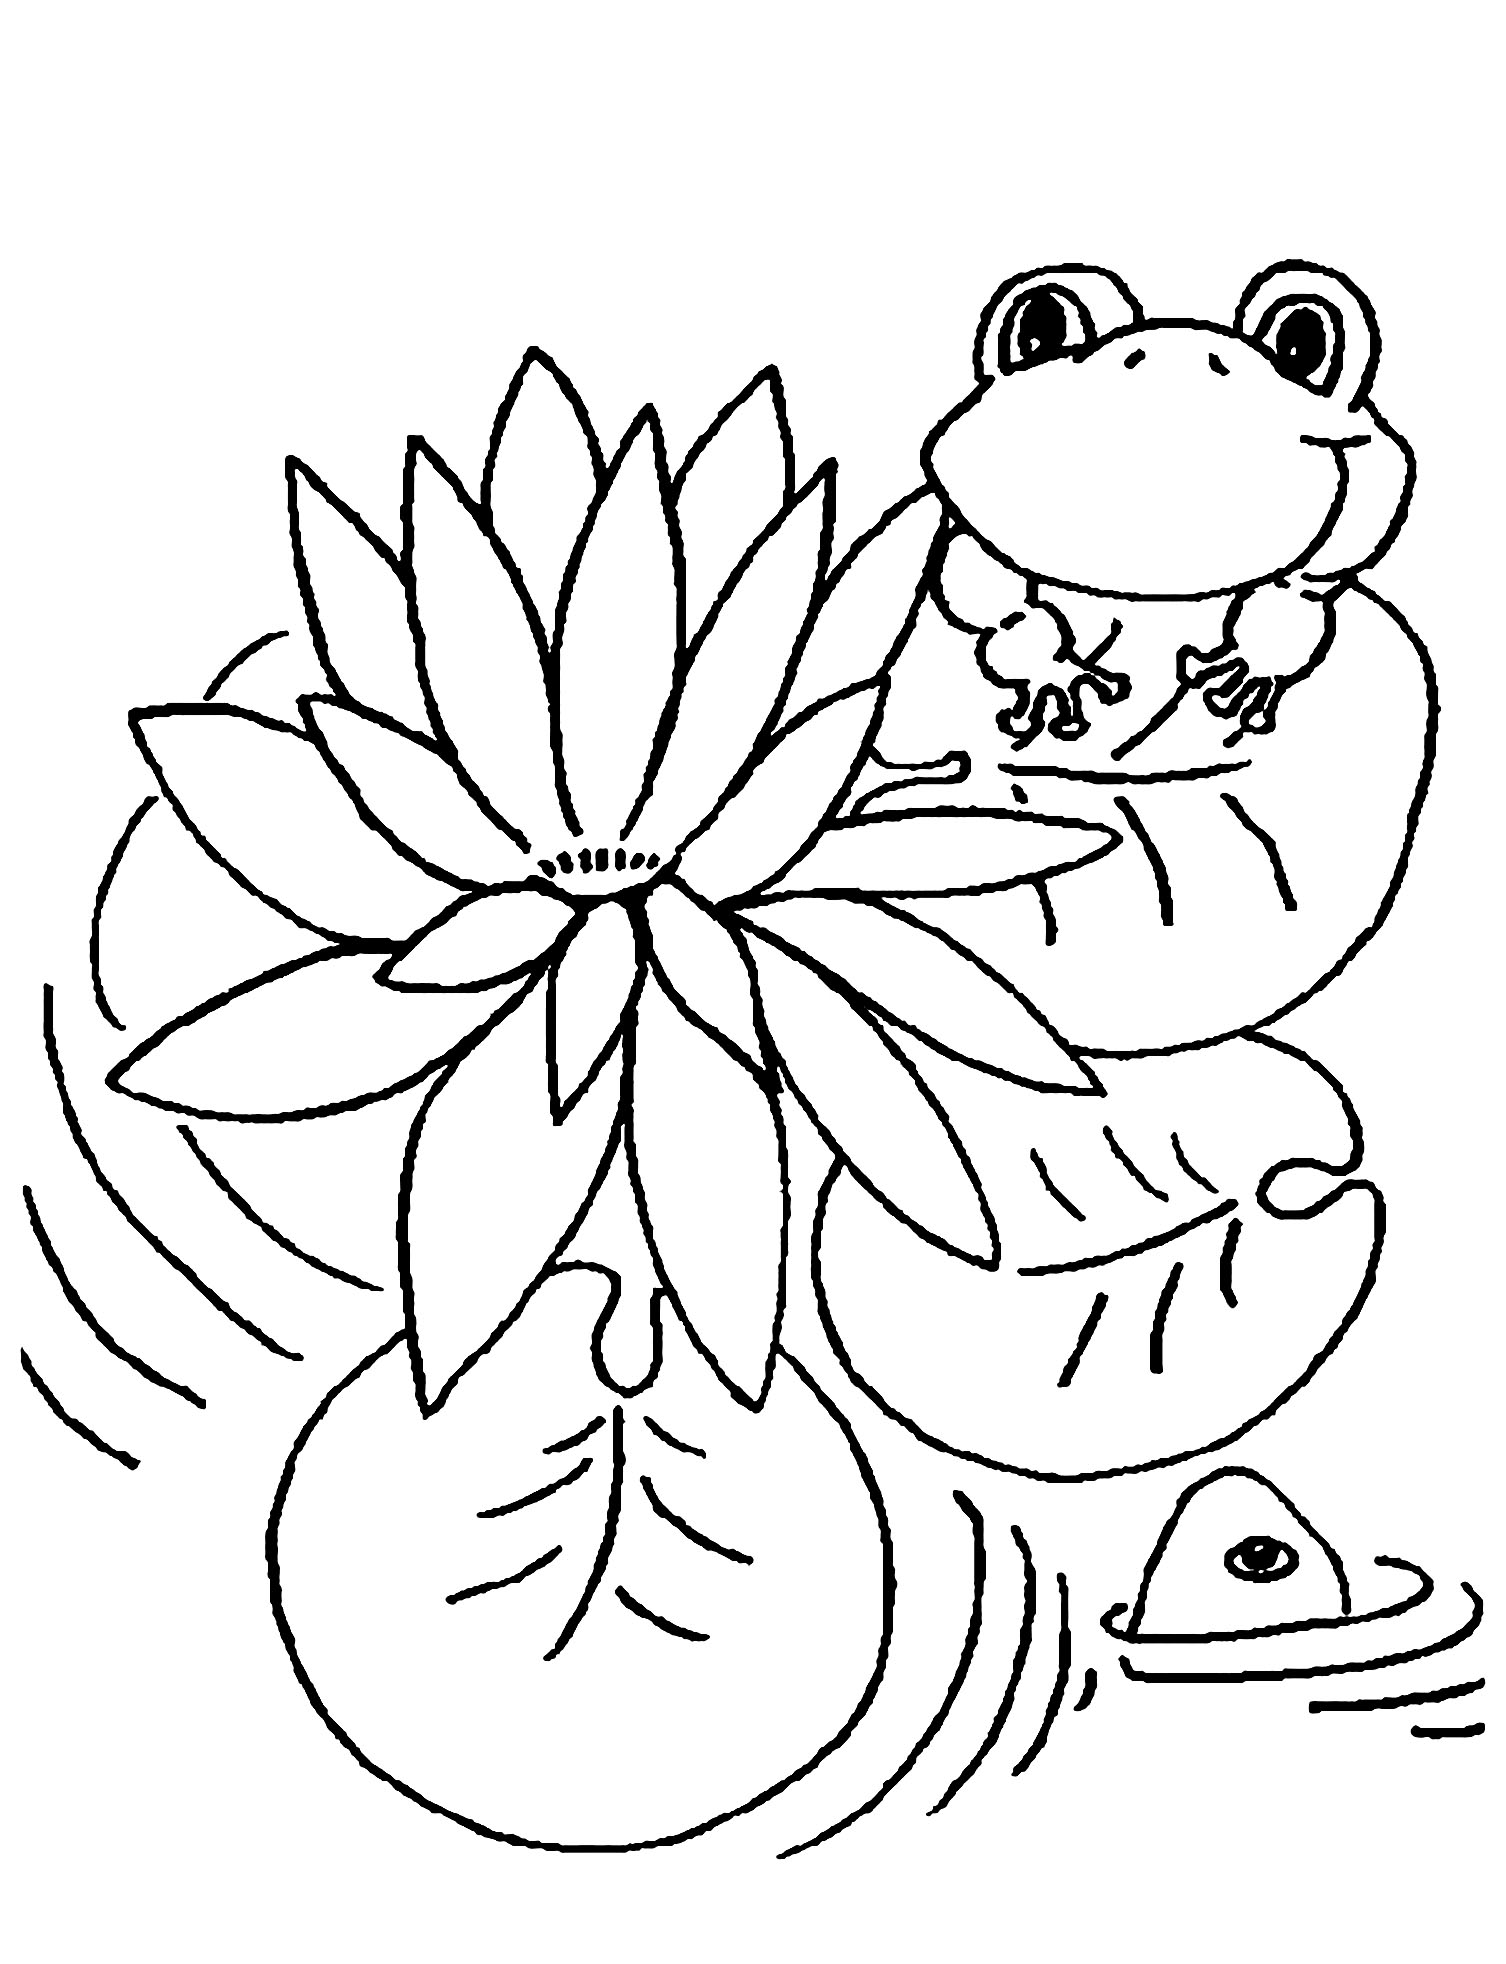 Frog On Lily Pad Coloring Page Lovely Lily Pad Coloring